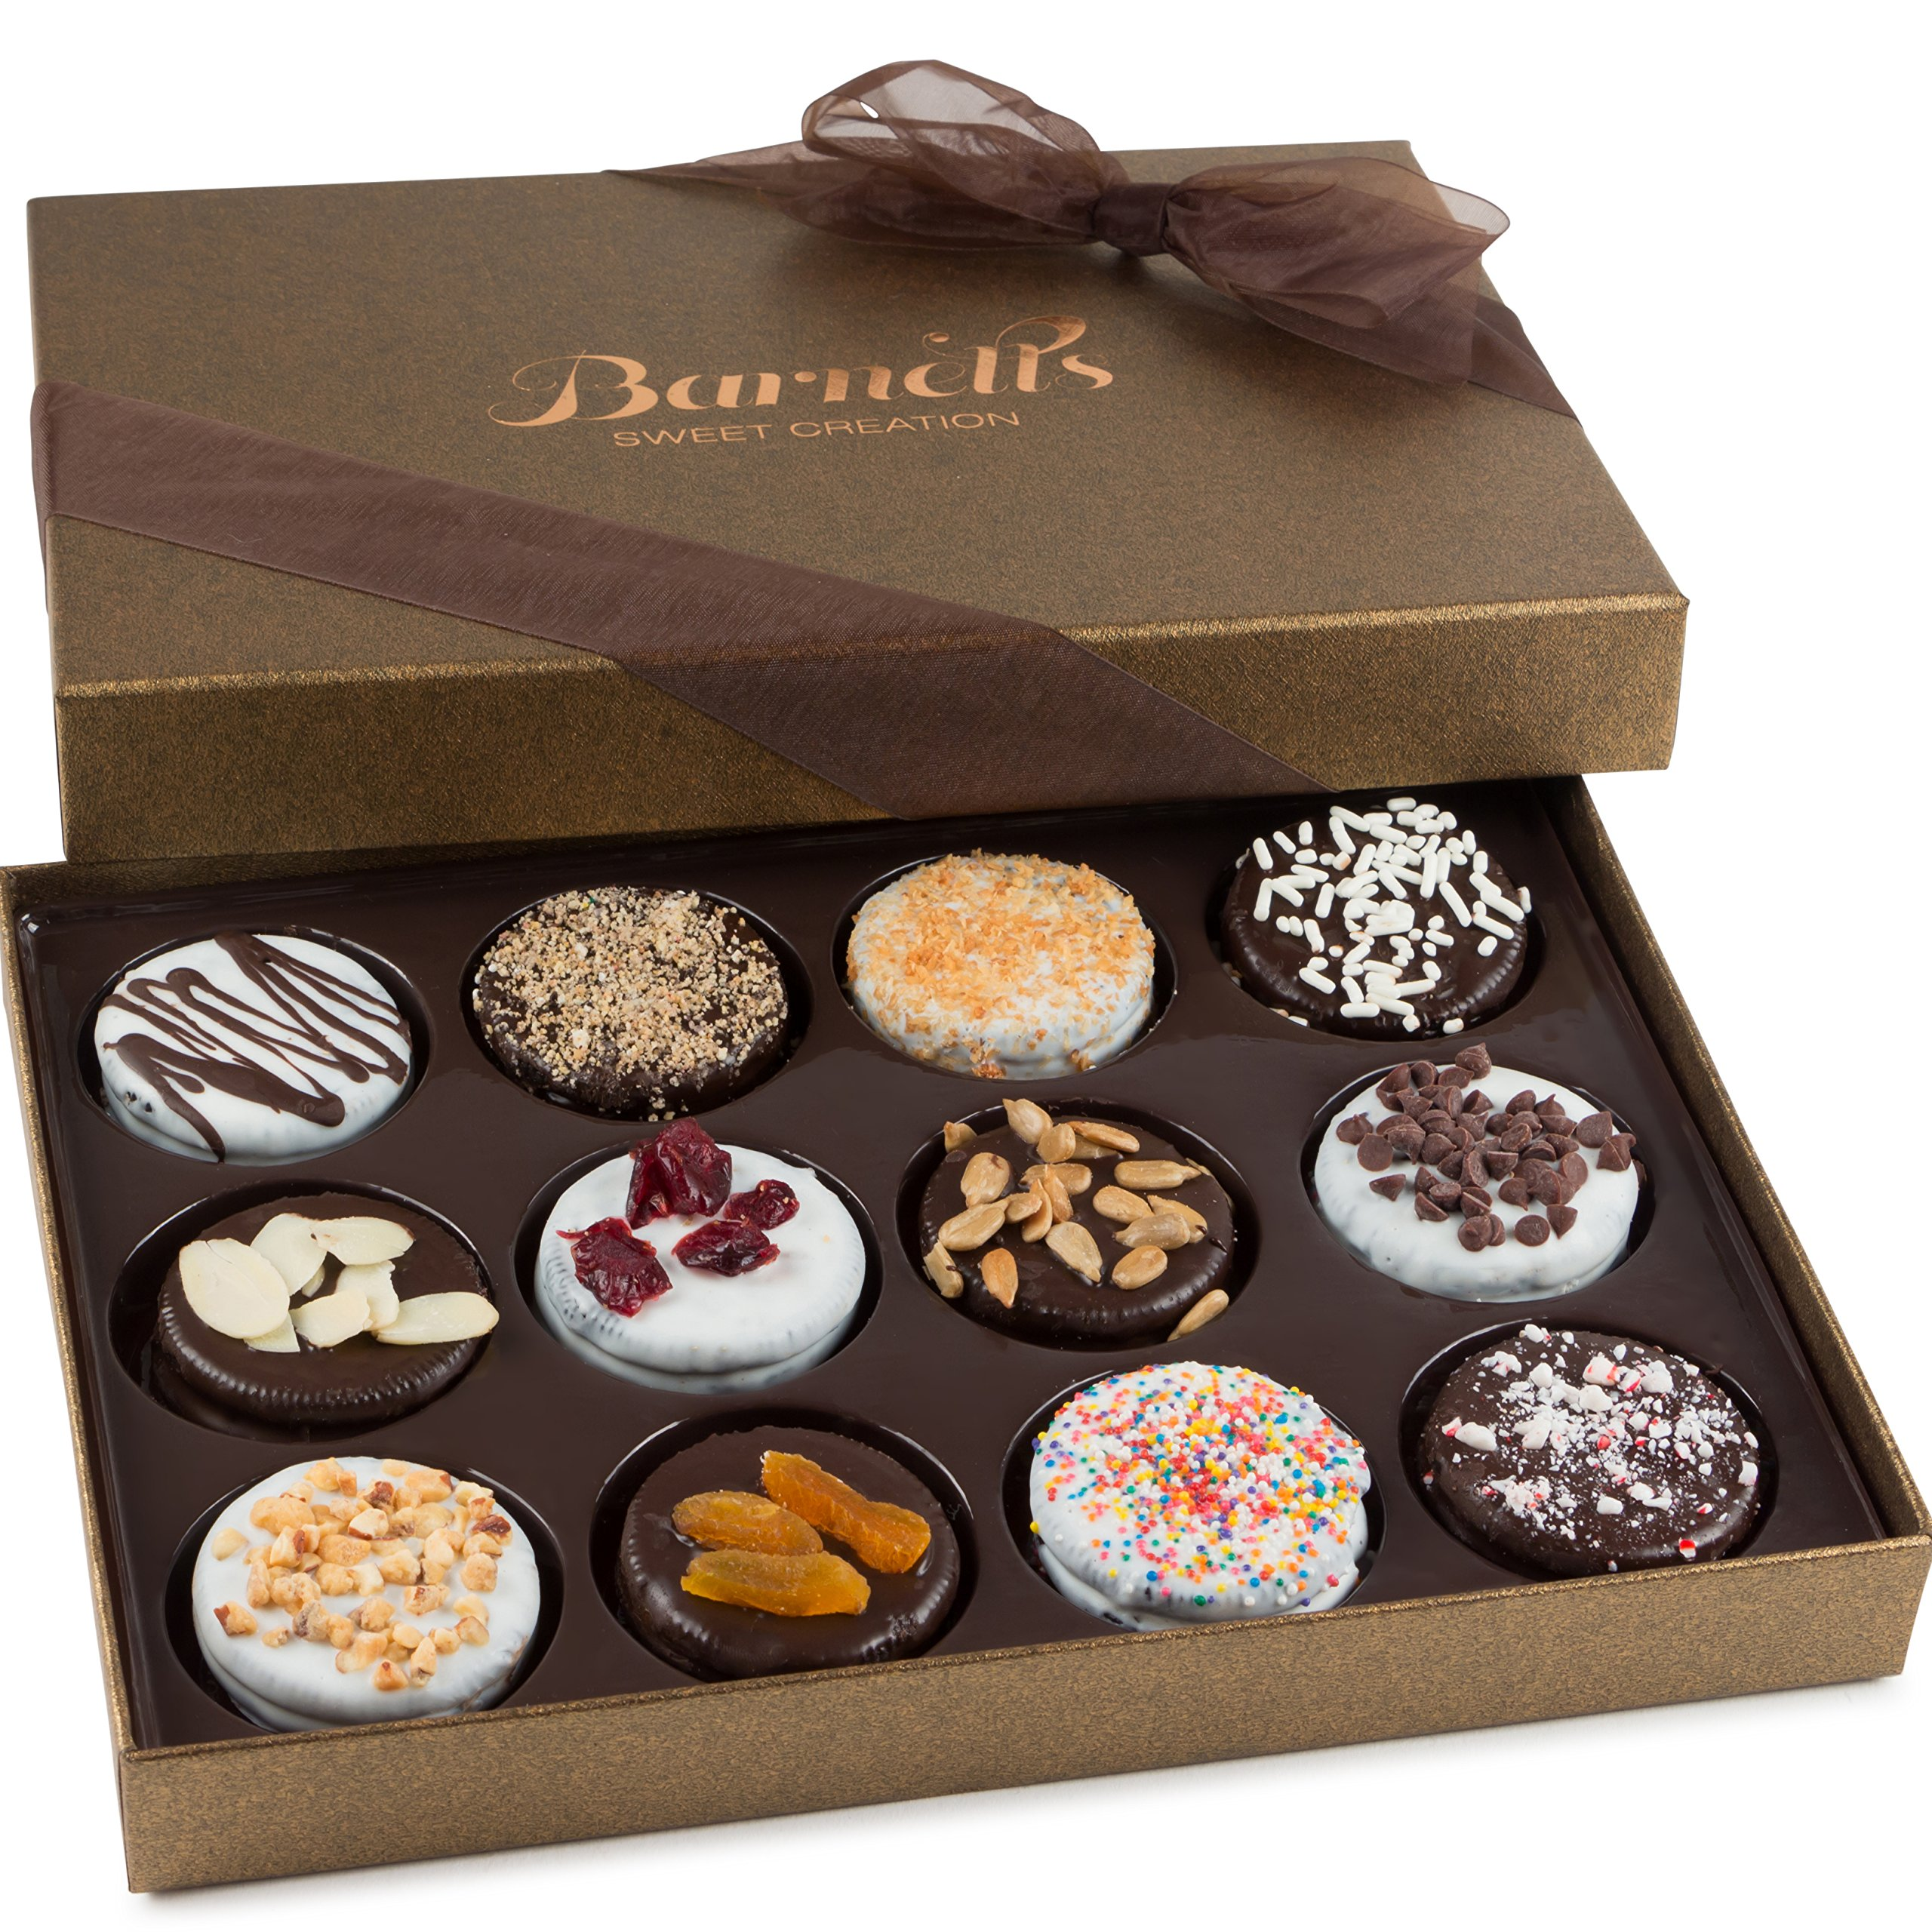 Barnett's Chocolate Cookies Gift Basket, Gourmet Christmas Holiday Corporate Food Gifts in Elegant Box, Thanksgiving, Halloween, Birthday or Get Well Baskets Idea for Men & Women, 12 Unique Flavors by Barnett's Fine Biscotti